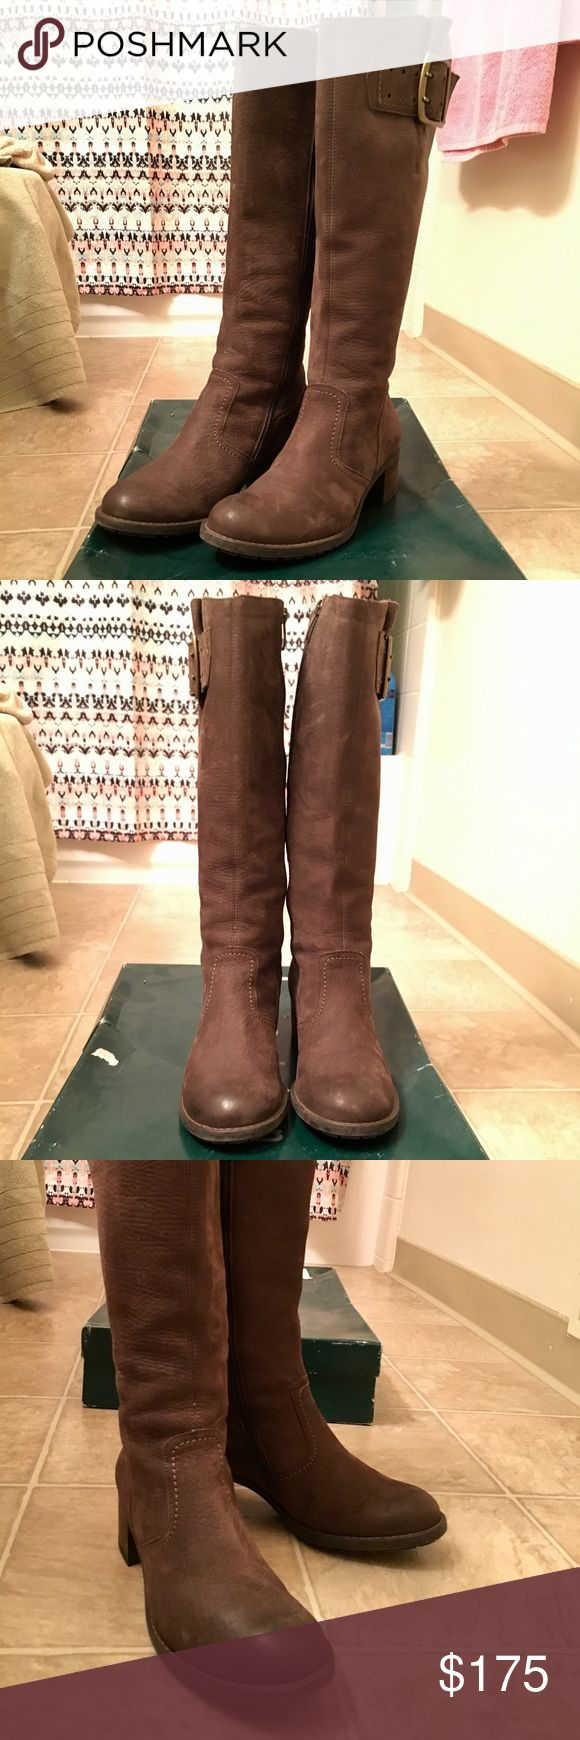 Paul Green Arianne Boots  - Very gently used Classic leather riding boot.  Very comfortable with big buckle. They come up about knee high and have a small heel.  Great condition! Always kept in the box.  Retail $400 from Nordstrom brand new.  Sold out everywhere! They will be sent with original box! ❤️ Paul Green Shoes Heeled Boots